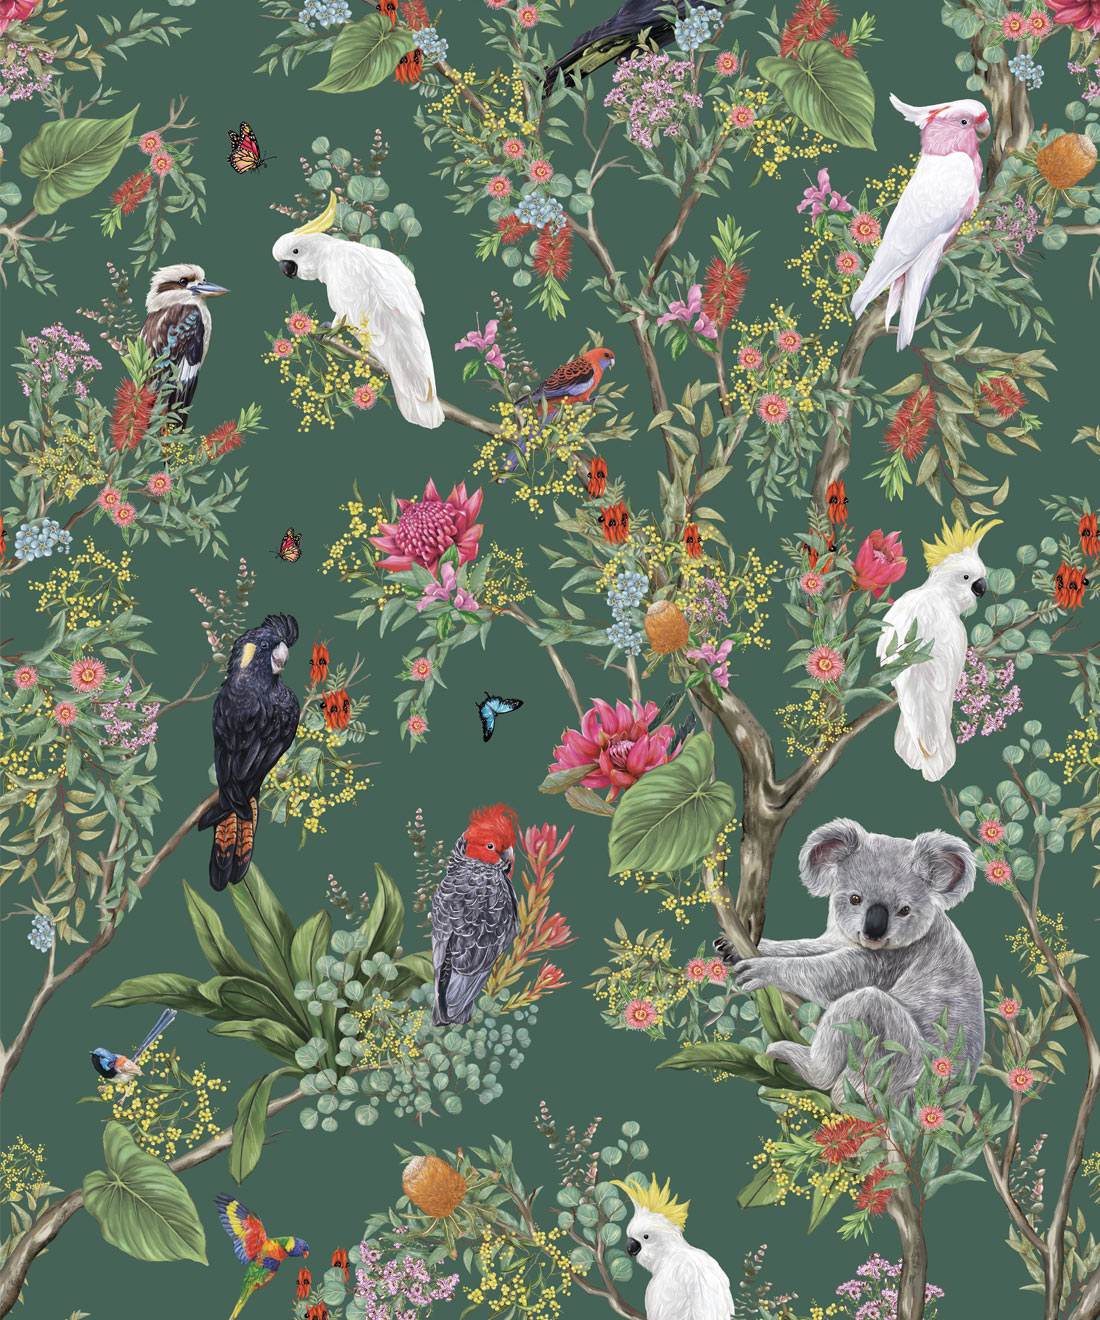 Australia Wallpaper Koalas And Cockatoos Milton King Uk